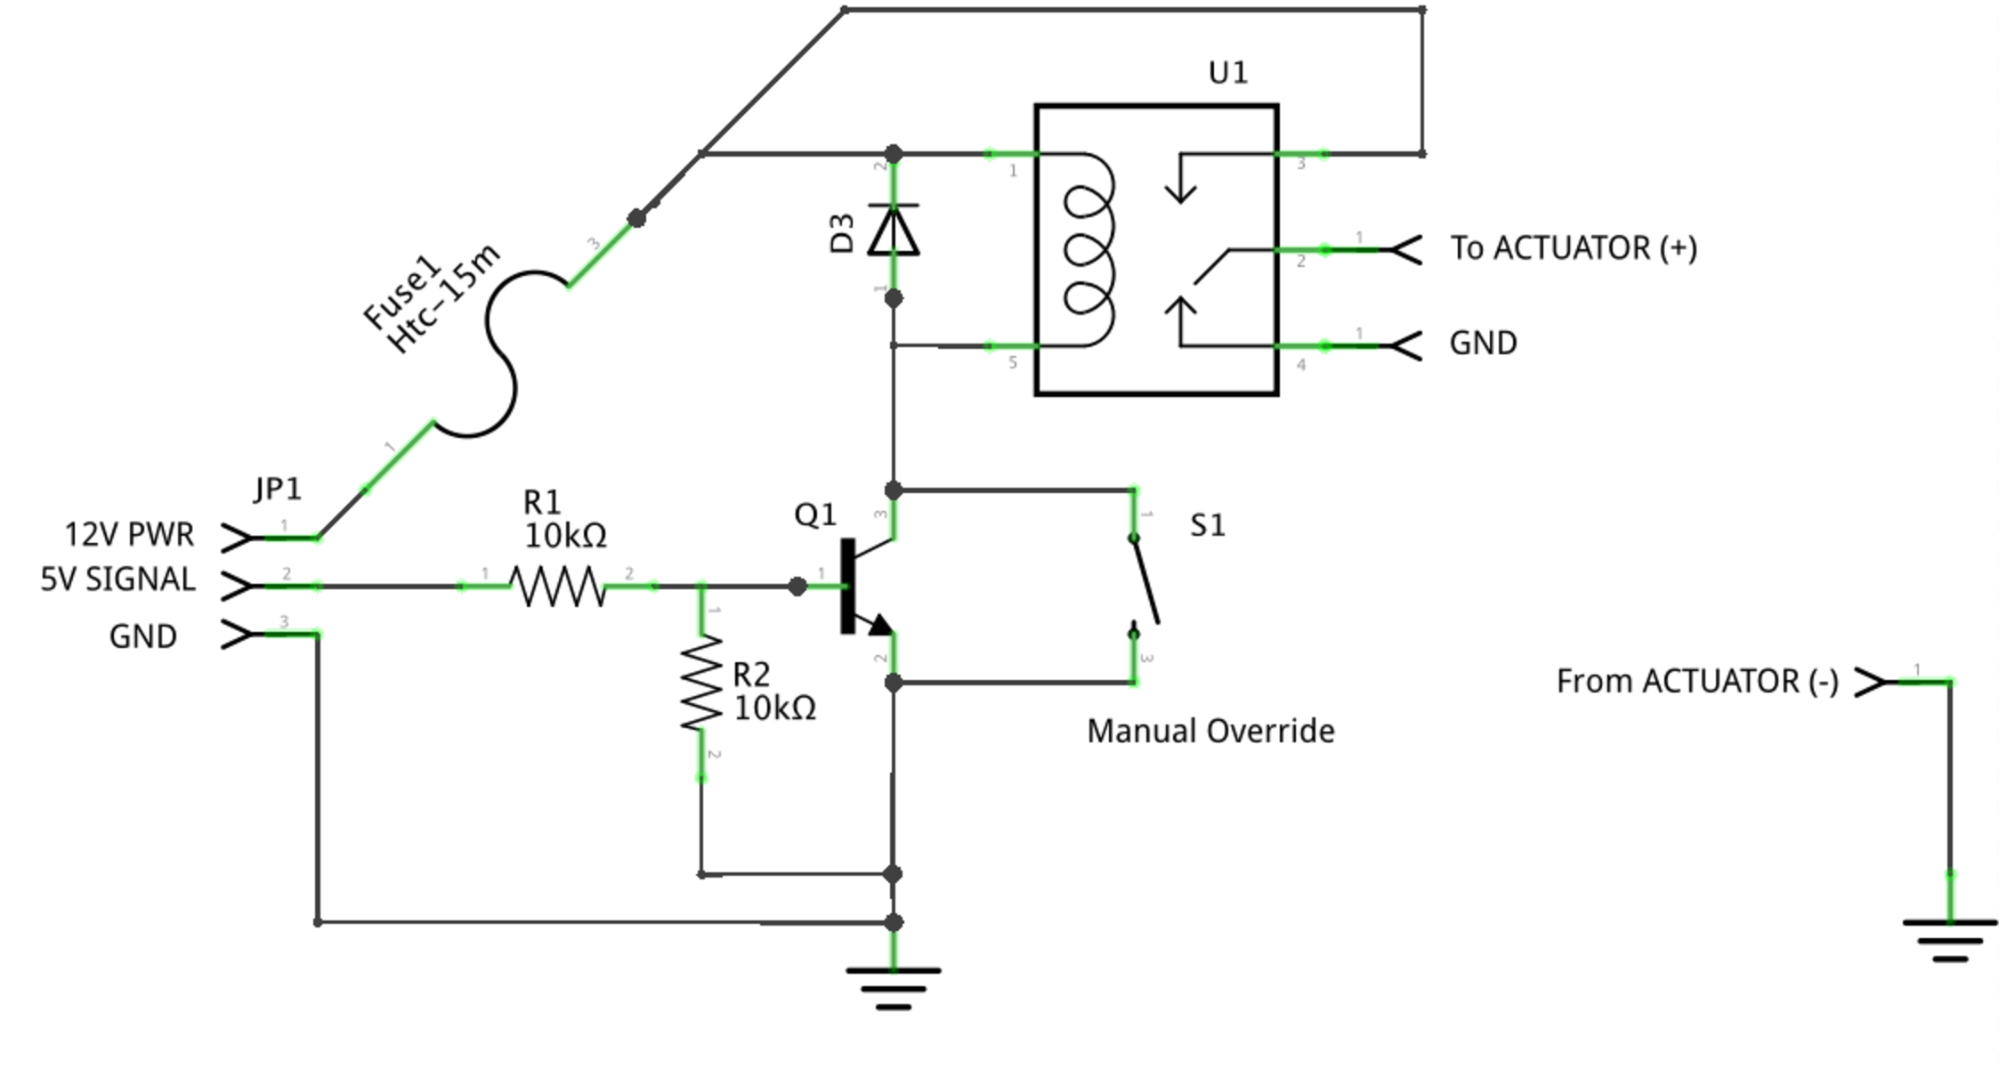 Tutorial Setting Up A Valve Controller Open Storm Docsopen Wiring Diagram As Well Npn Transistor Switch Circuit 9 Where To Add An Override Manually Control The Actuator